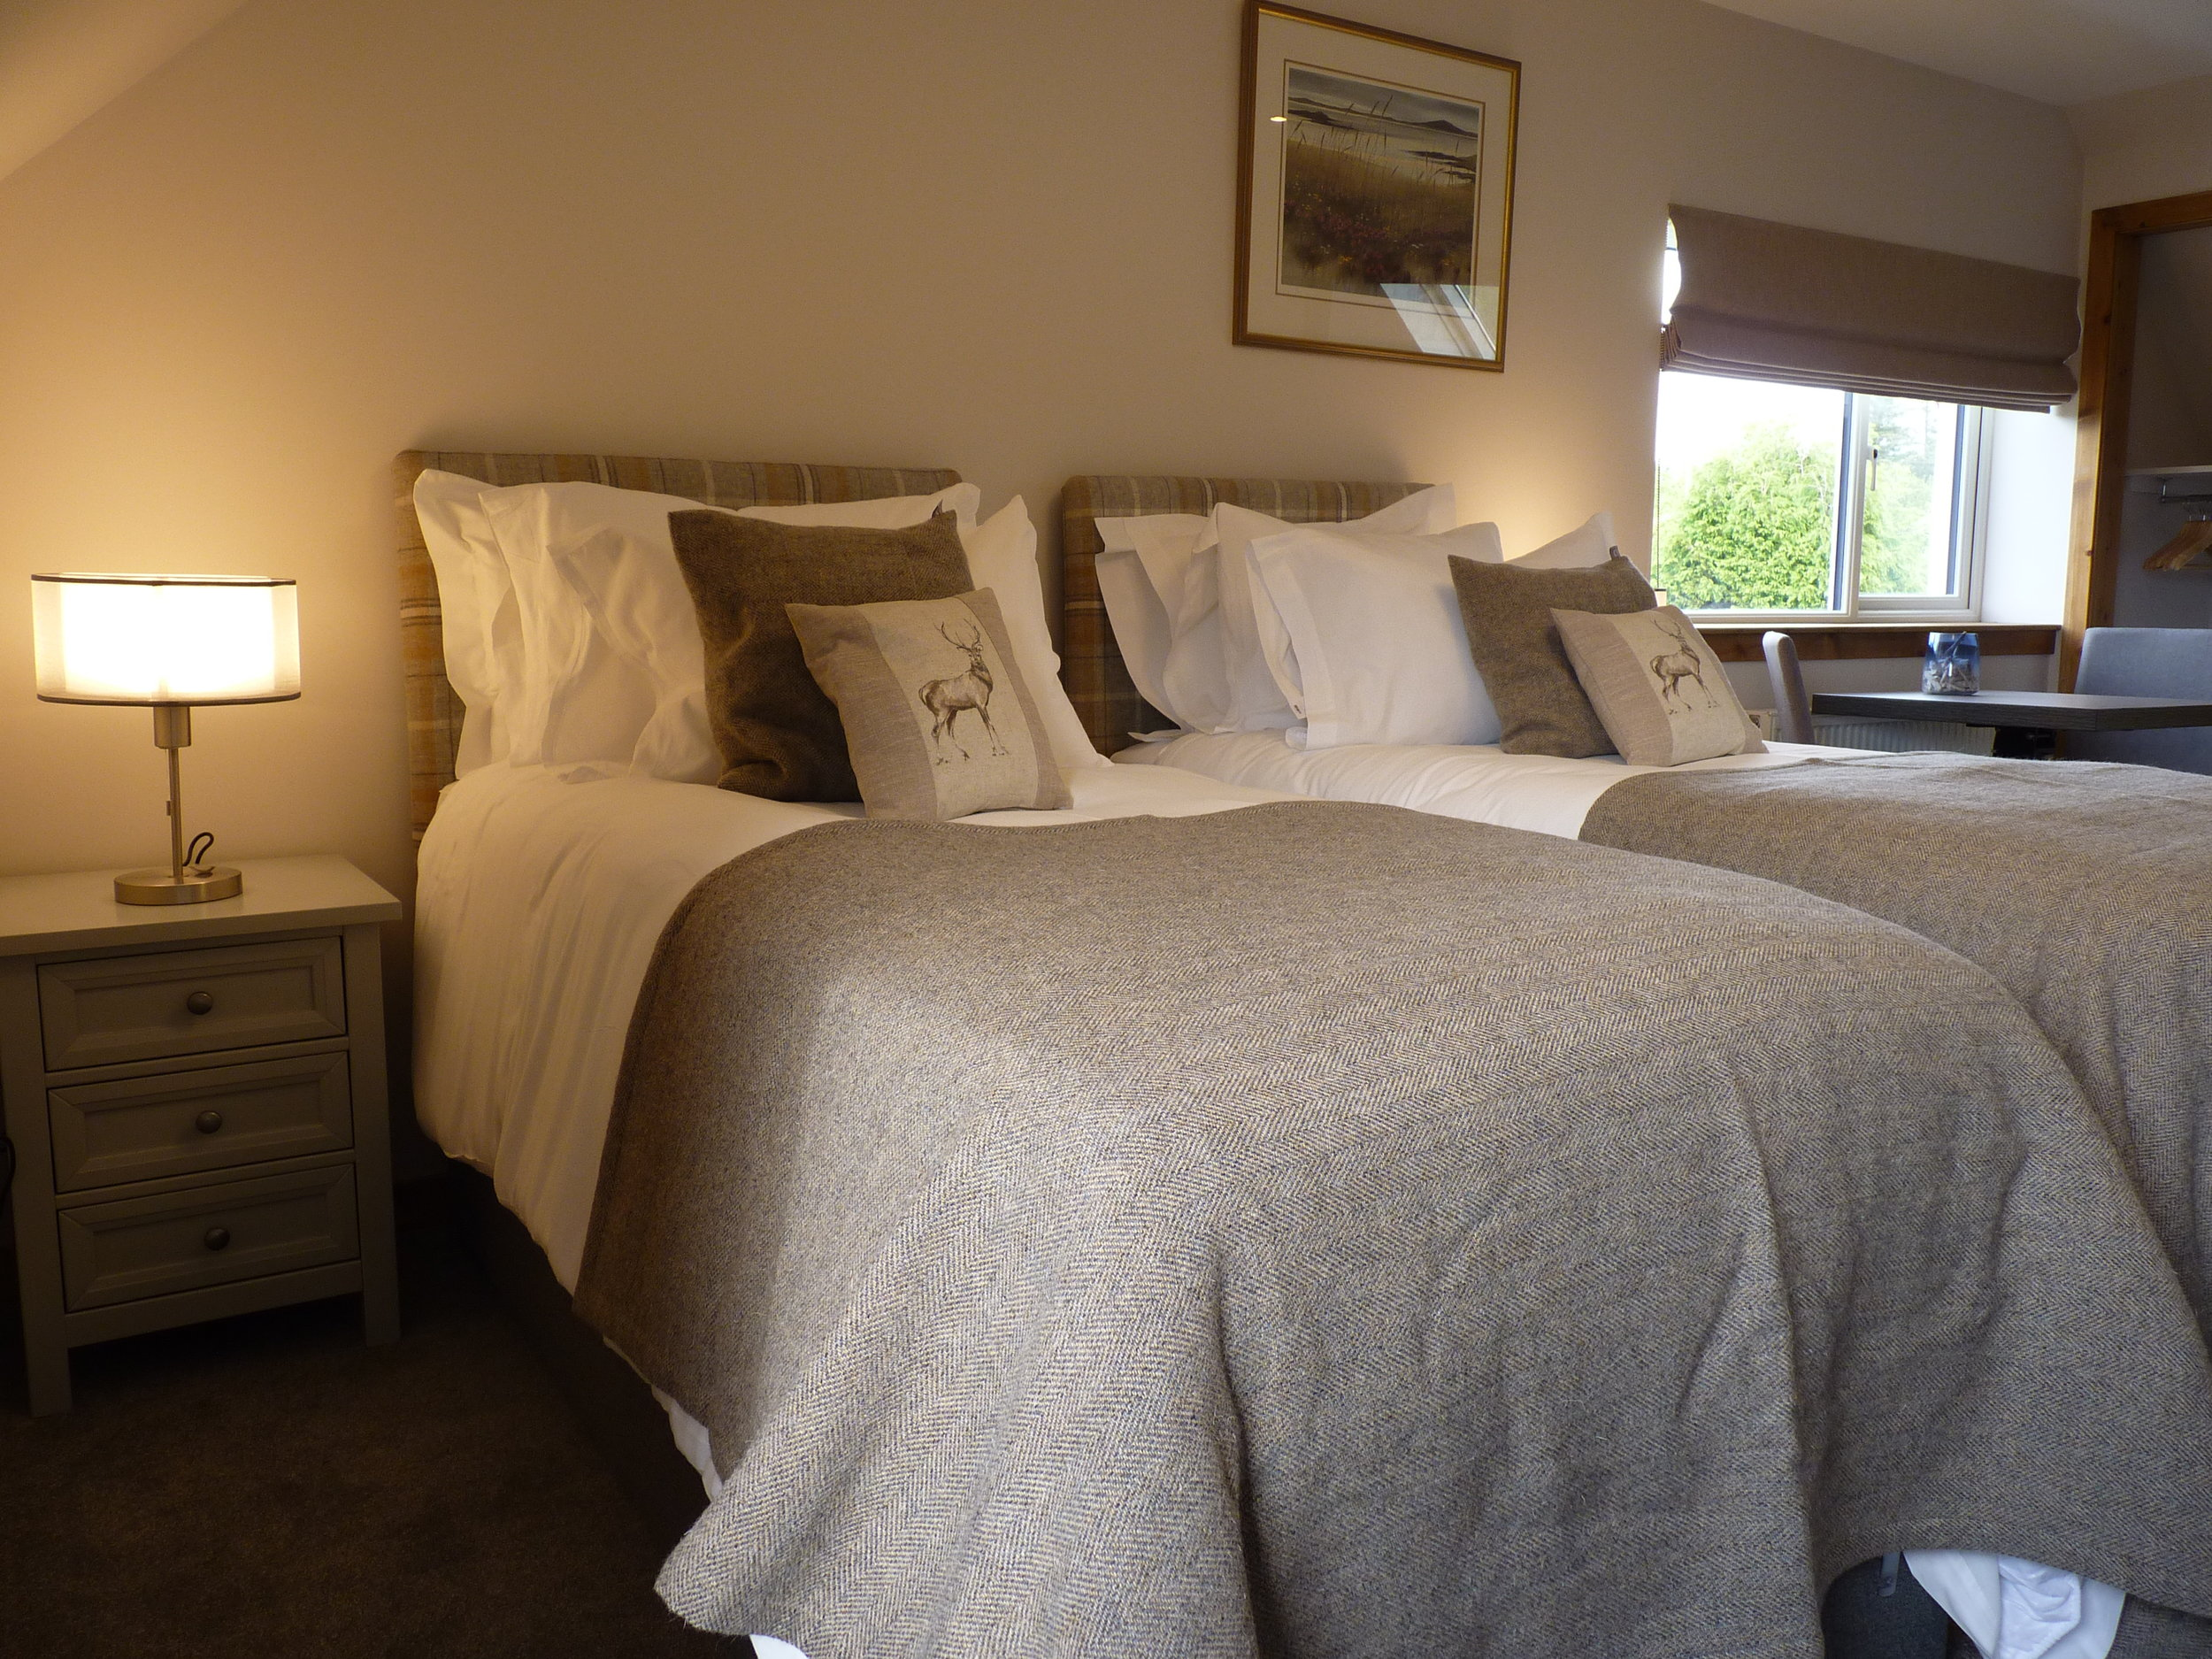 North Suite Skye Lodge - Egyptian Cotton Sheets. A choice of 3 pillows for your sleep comfort (25m2 / 269 ft2)A room with a view. Sunsets and sky on Isle of Skye.✓ Bathrobes✓ Blackout curtains✓ Coffee Maker and Tea Tray✓ Hairdryer✓ Luxury Toiletries✓ Ensuite with walk in power shower